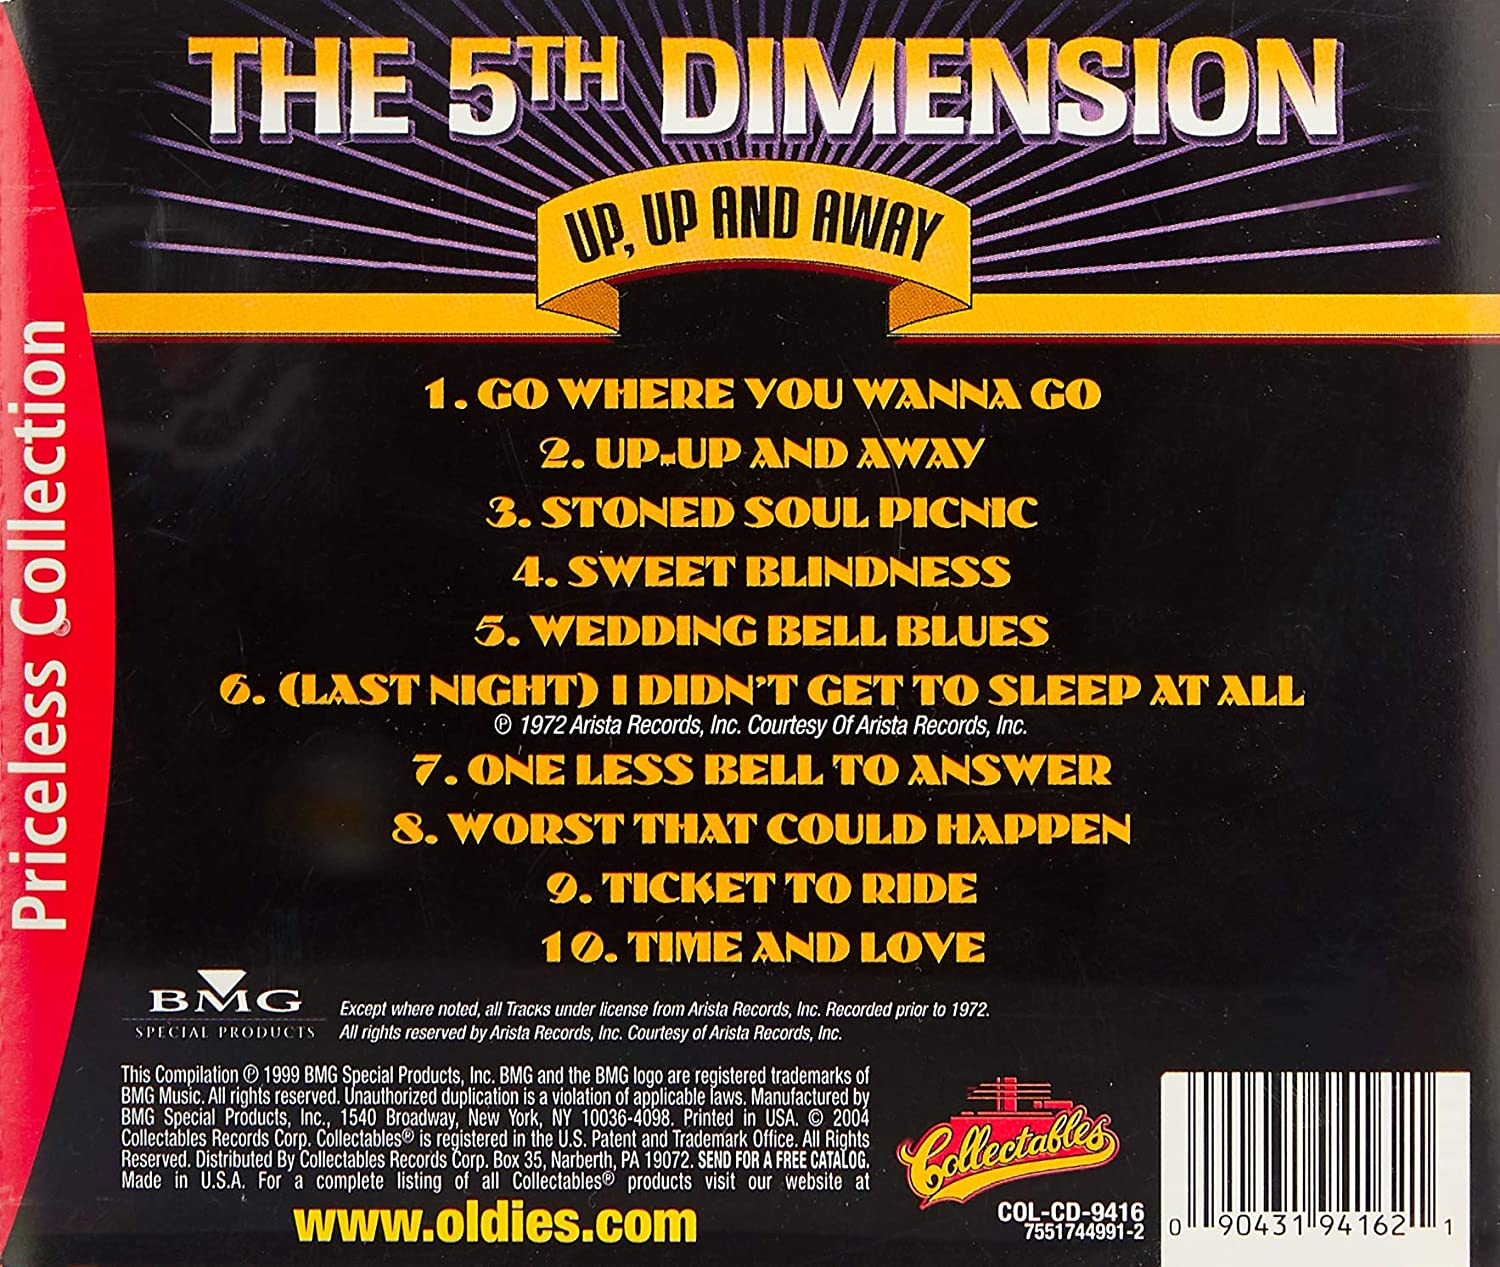 Details about Up Up and Away The 5th Dimension Vinyl LP Soul